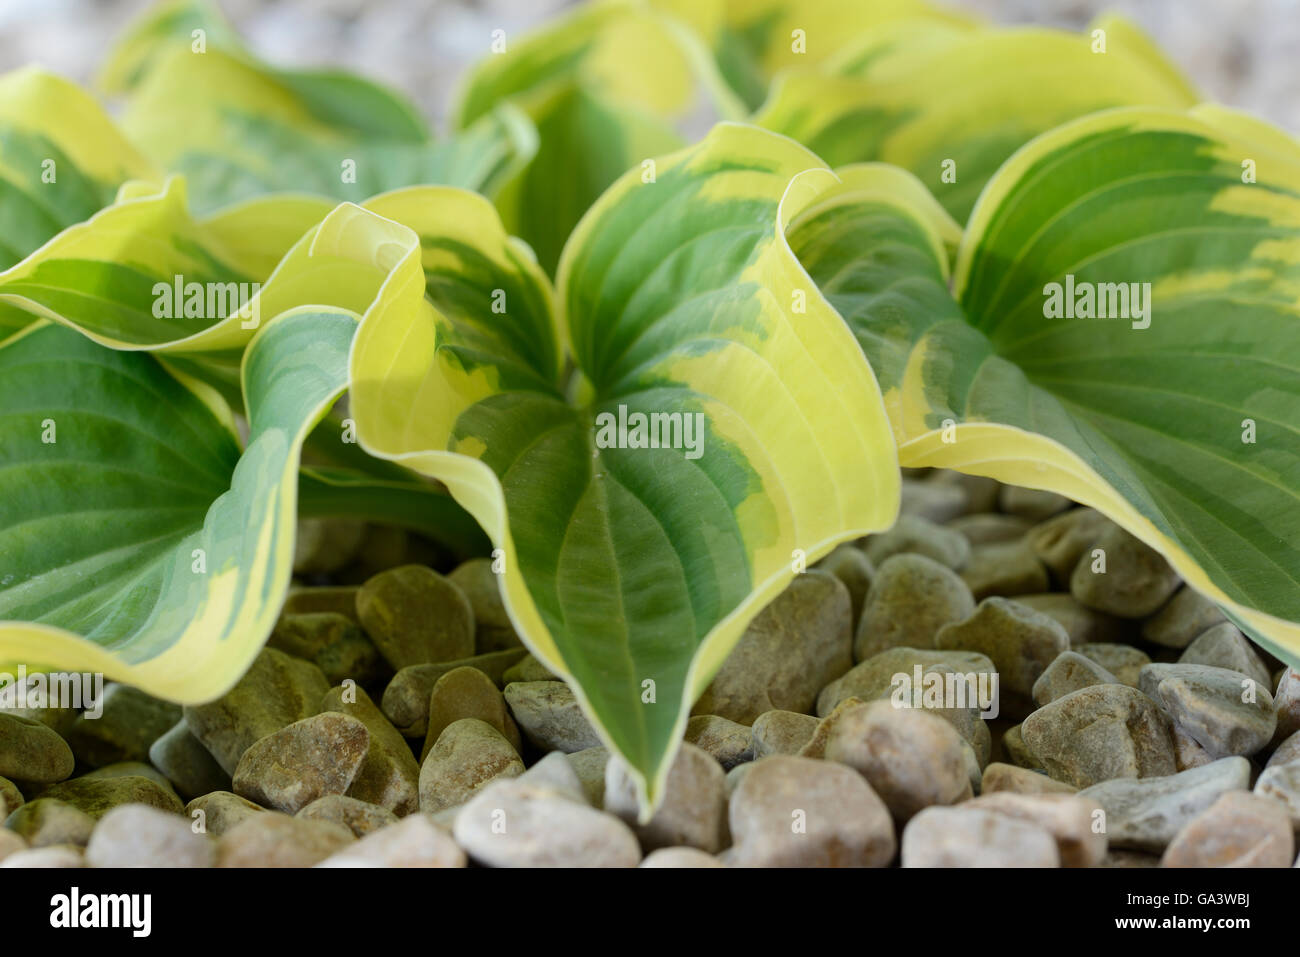 Hosta  'Wide Brim'  Plantain lily  Growing in gravel  June - Stock Image